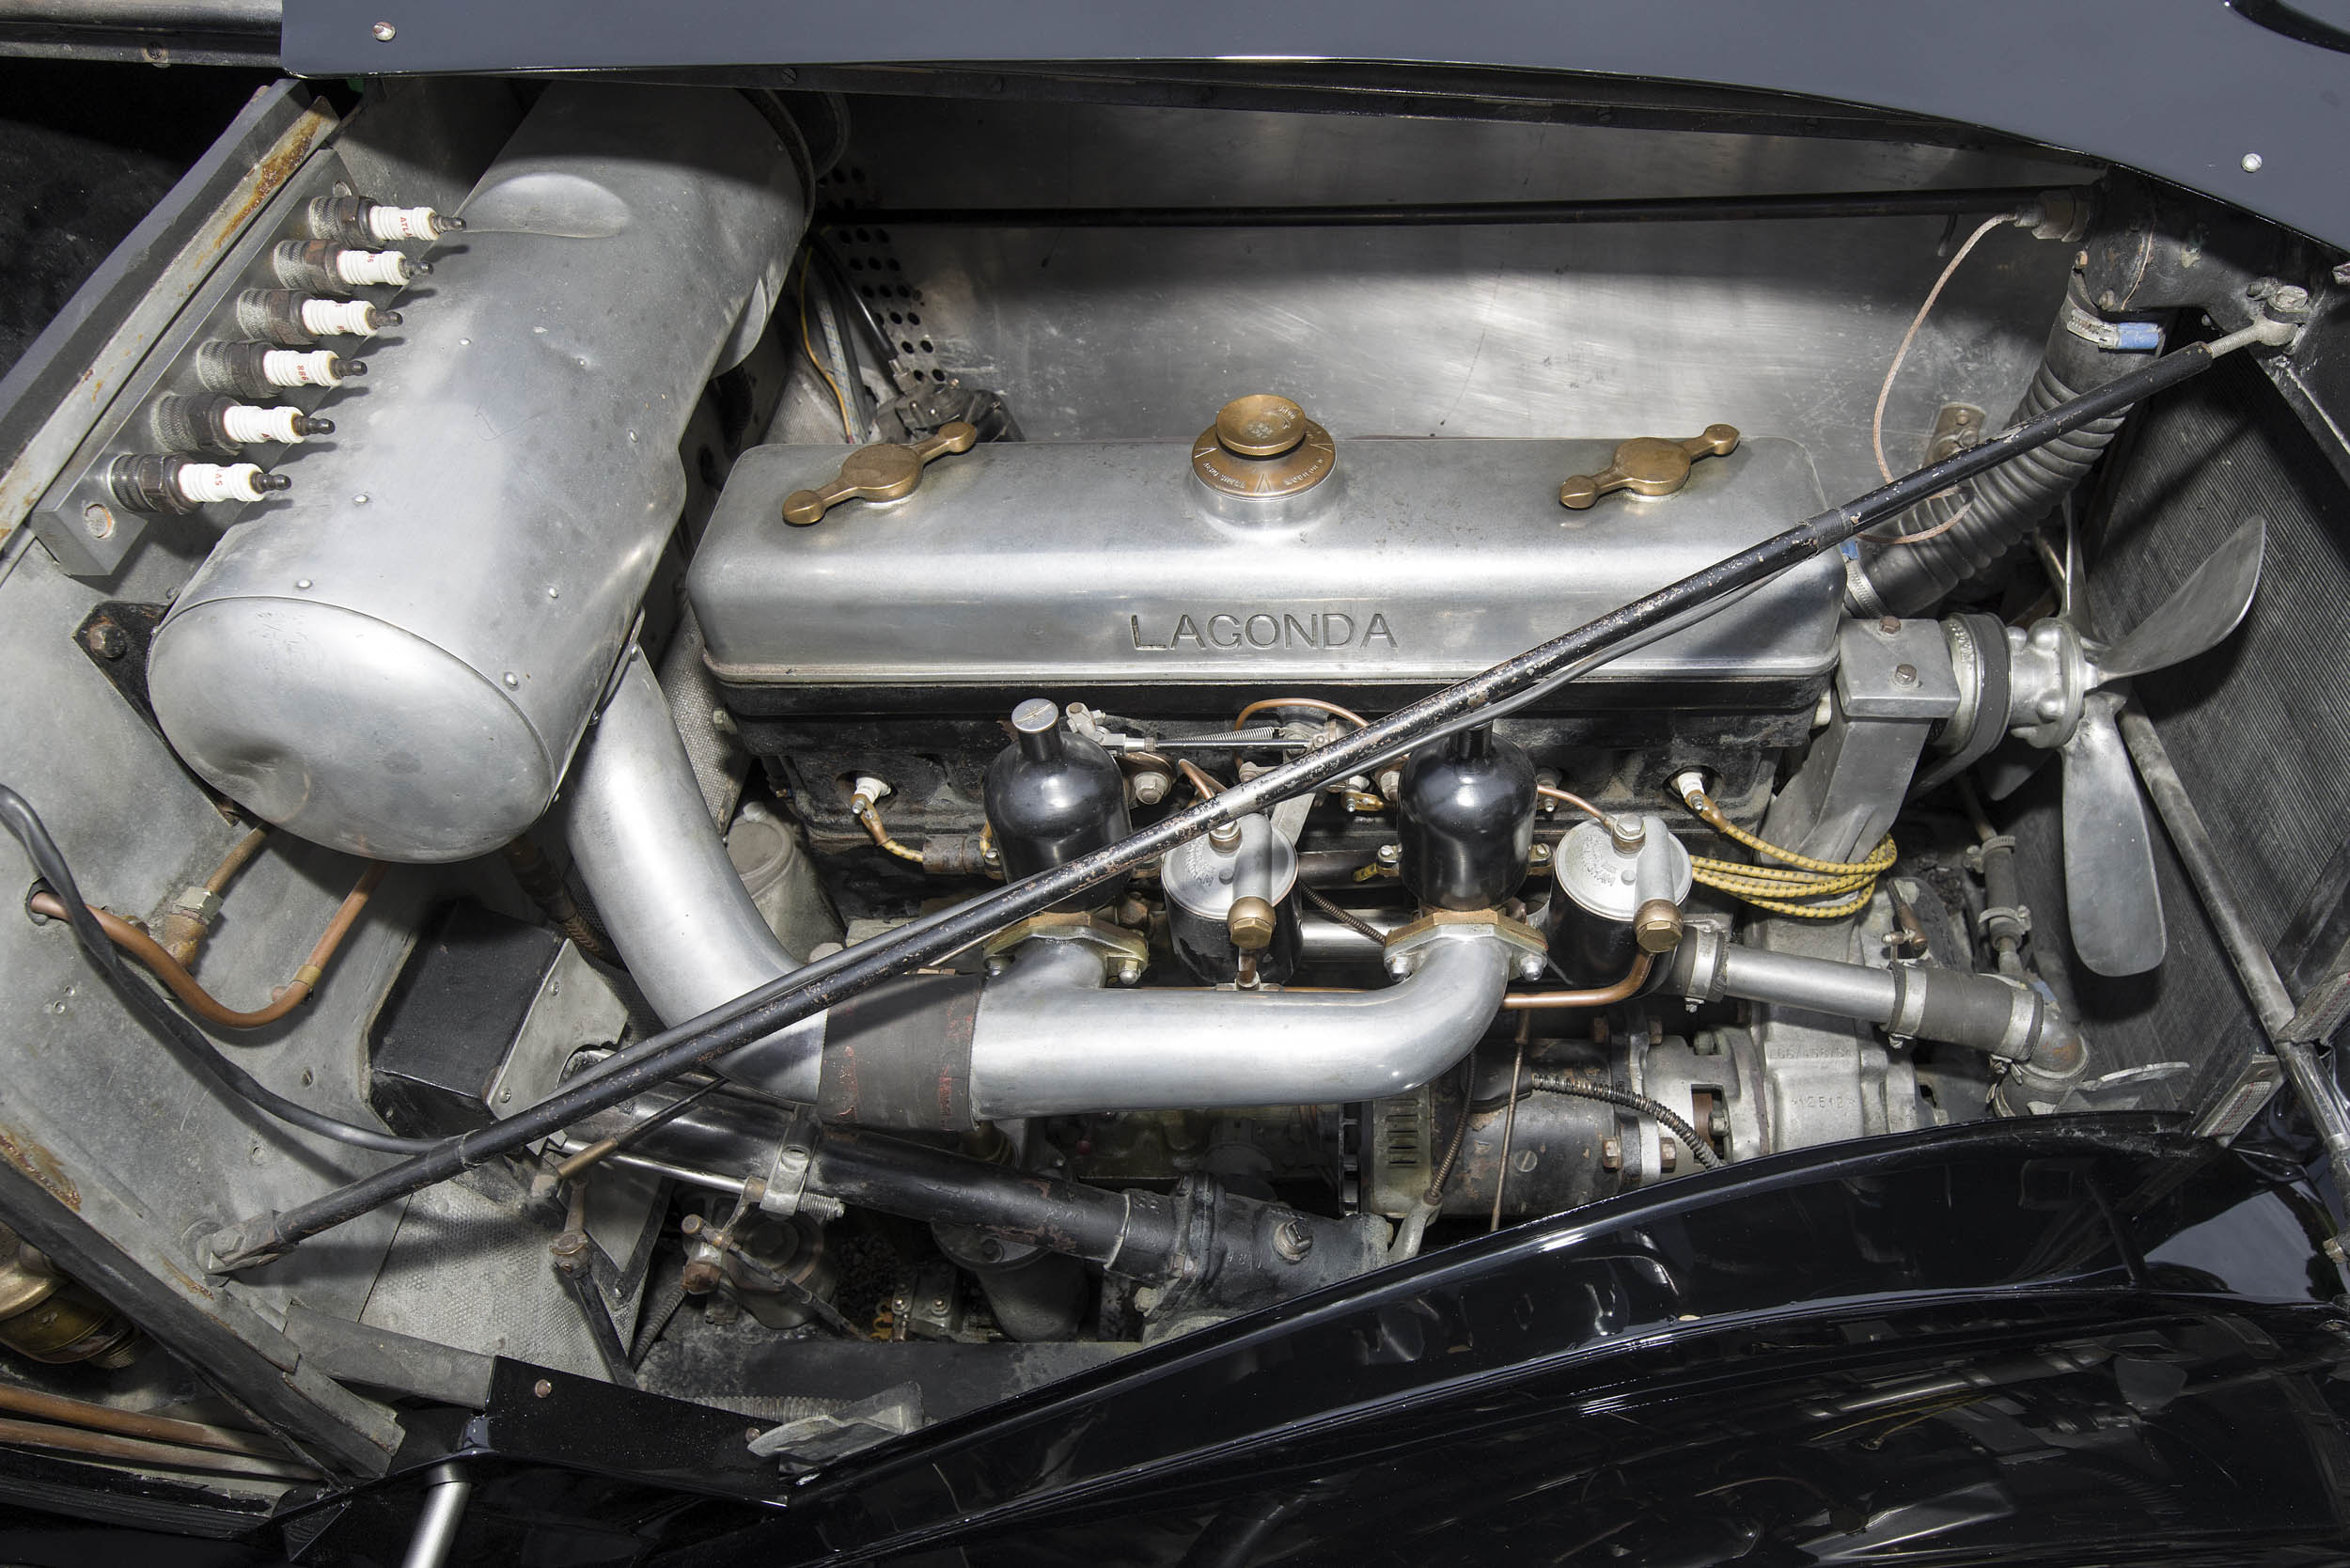 The 4.5-liter inline six-cylinder features overhead valves and two SU carburetors. It is said to produce approximately 150 horsepower, considerably more than the 5.7-liter Cadillac V-8 of the same vintage. A spare set of spark plugs is mounted above the air-cleaner housing.